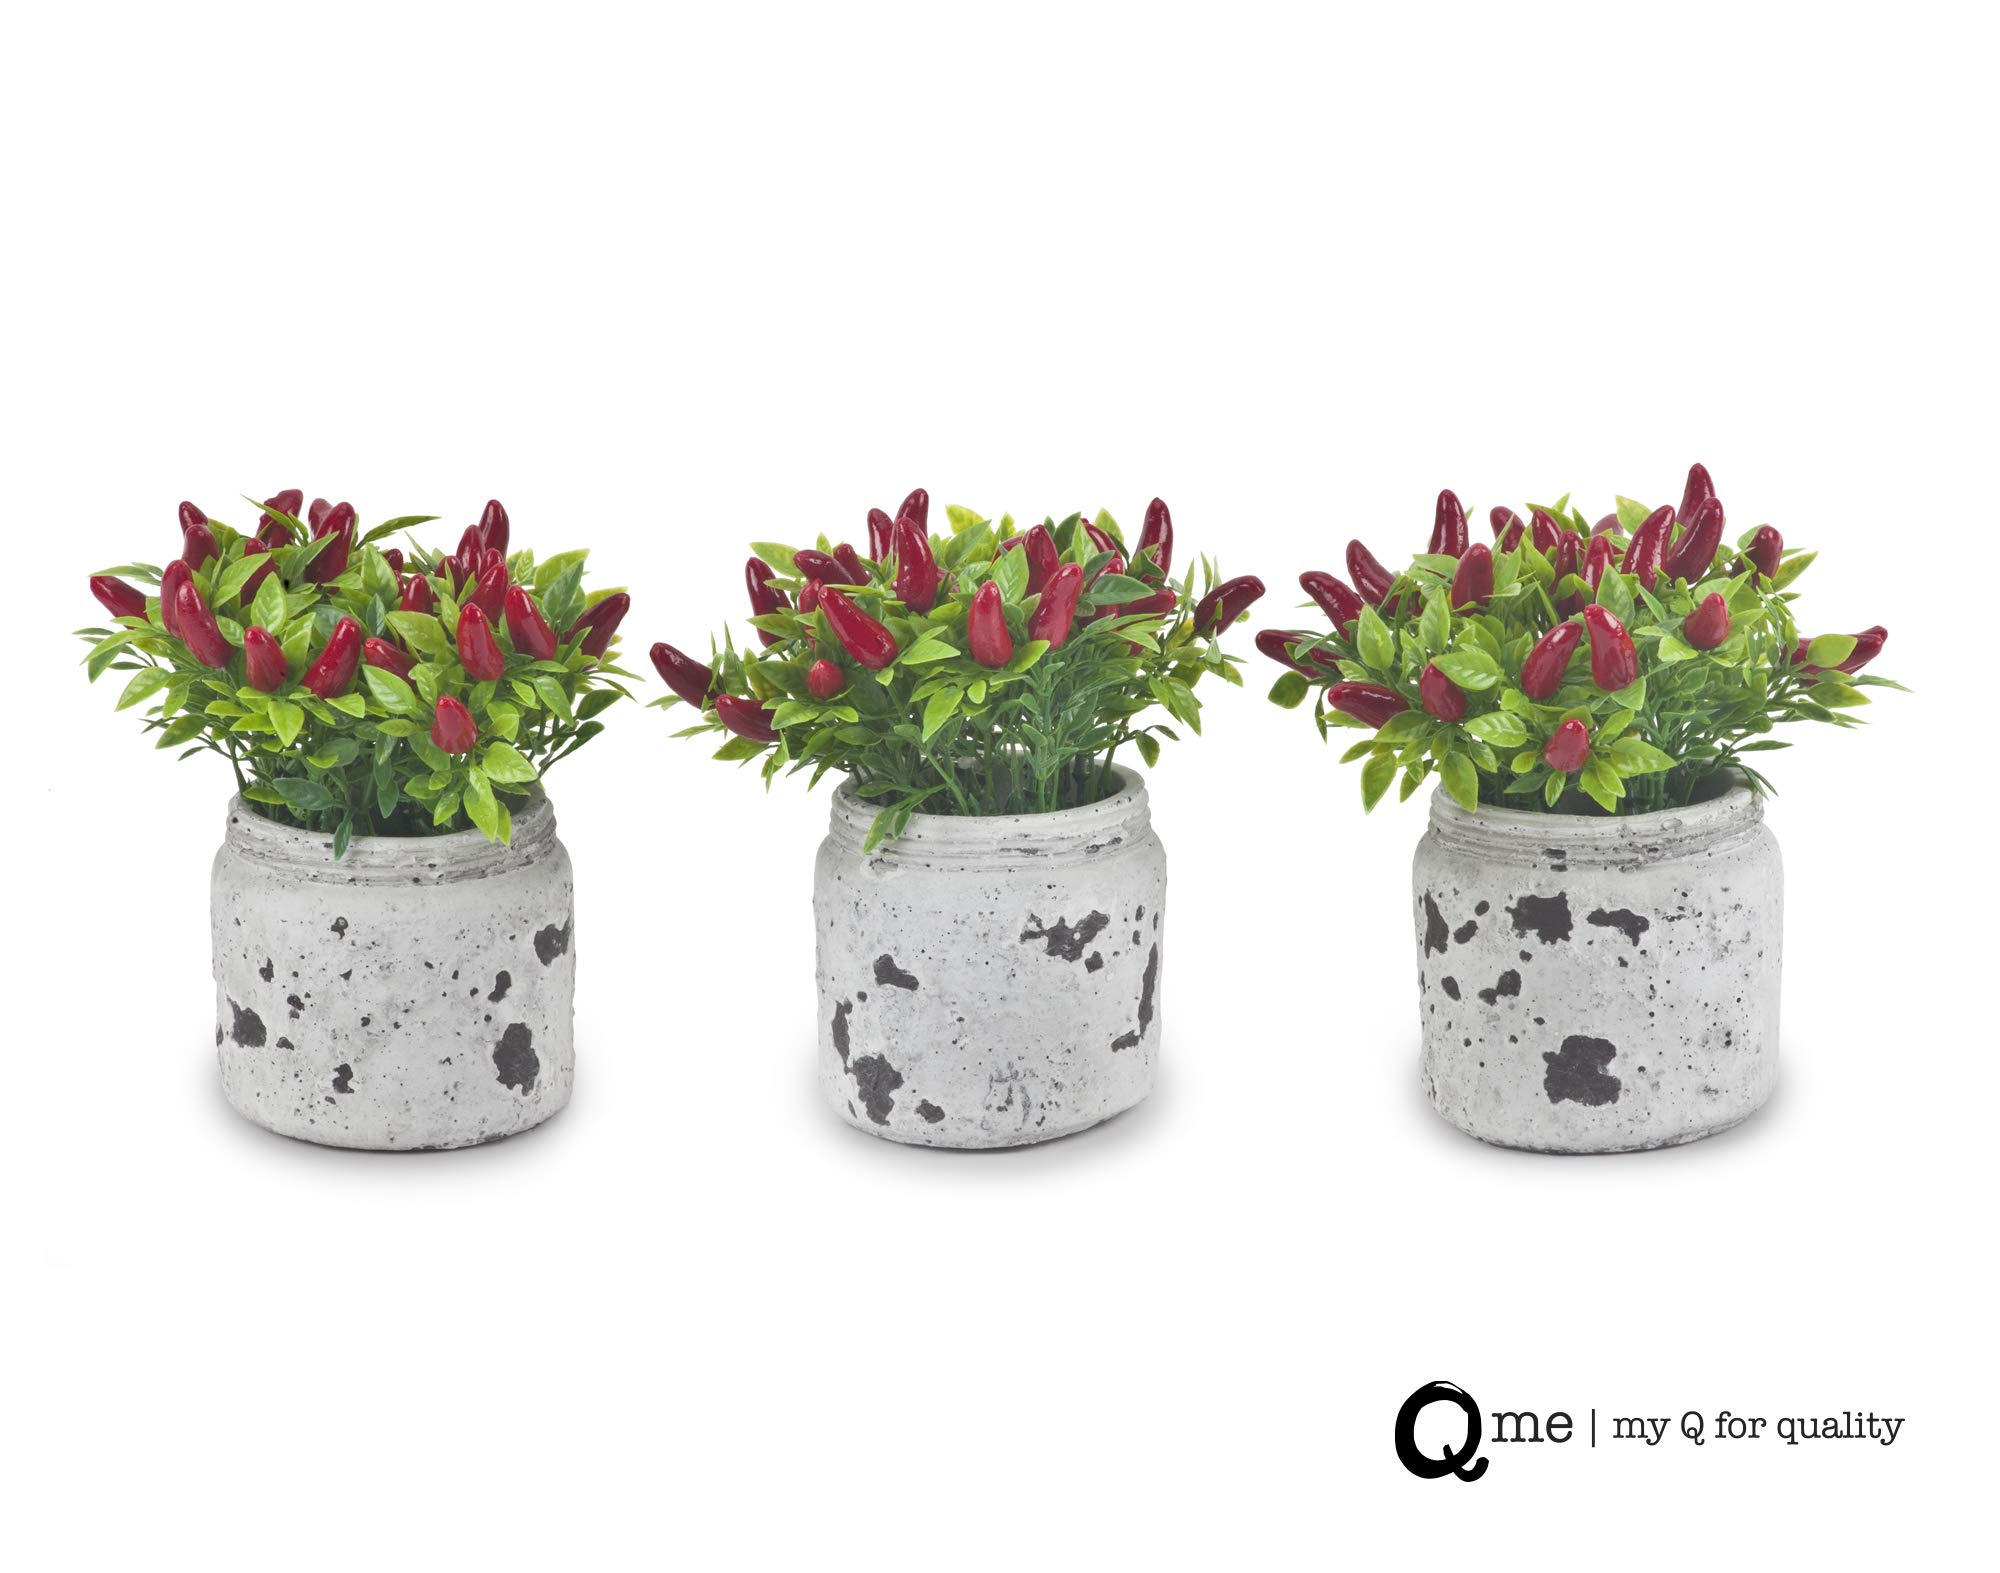 Q me Set of 3 Artificial Potted Chili Plant: Lifelike Looking Green-Leaf Plant in Vintage Mason Jar with 24 Red Chili Peppers for Home or Work Décor or Gift by Q me